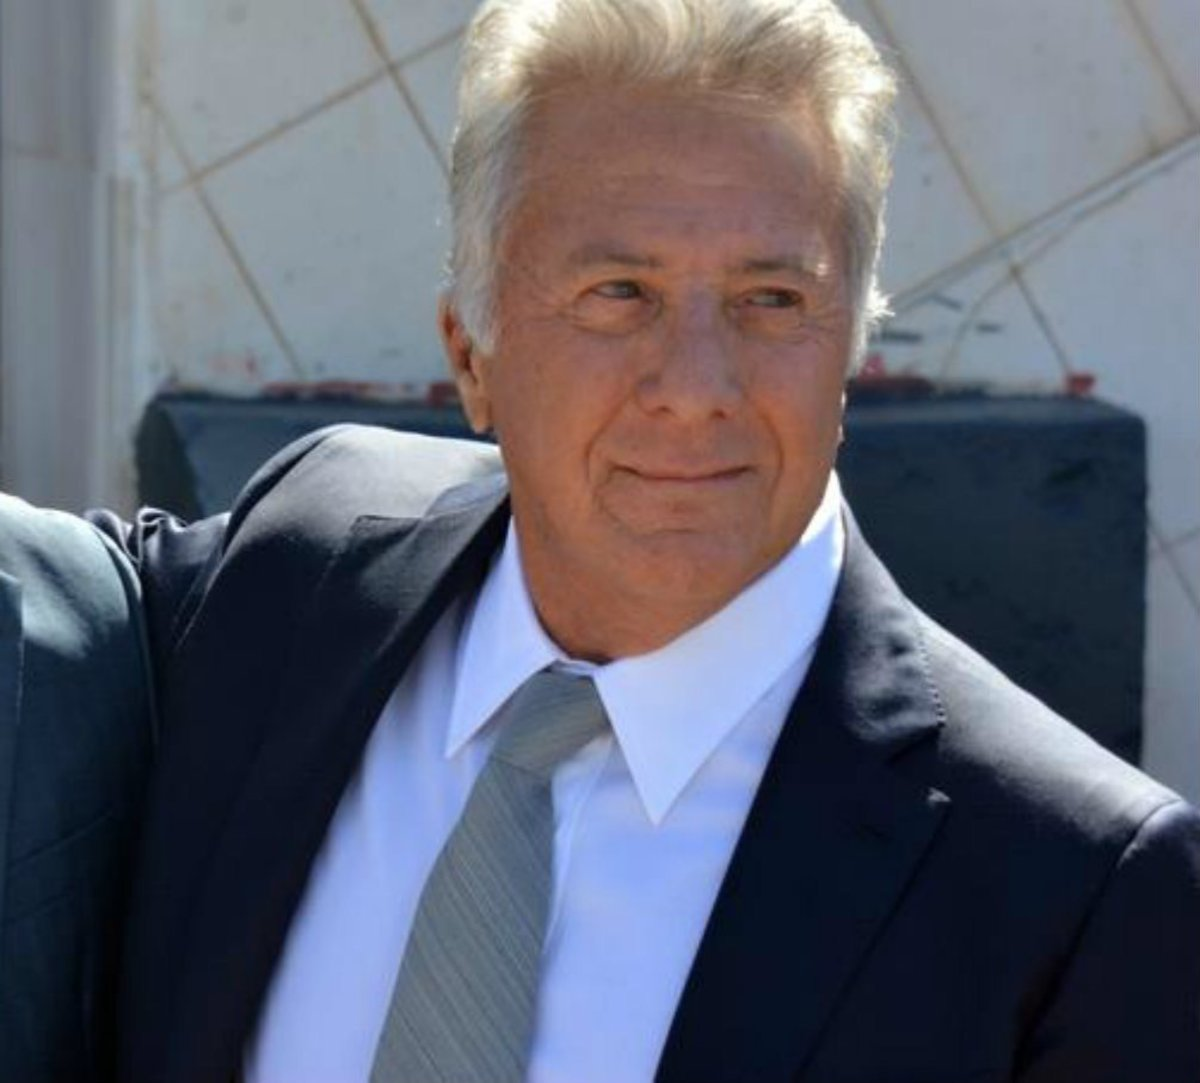 Actress Accuses Dustin Hoffman Of Sexual Harassment Promo Image